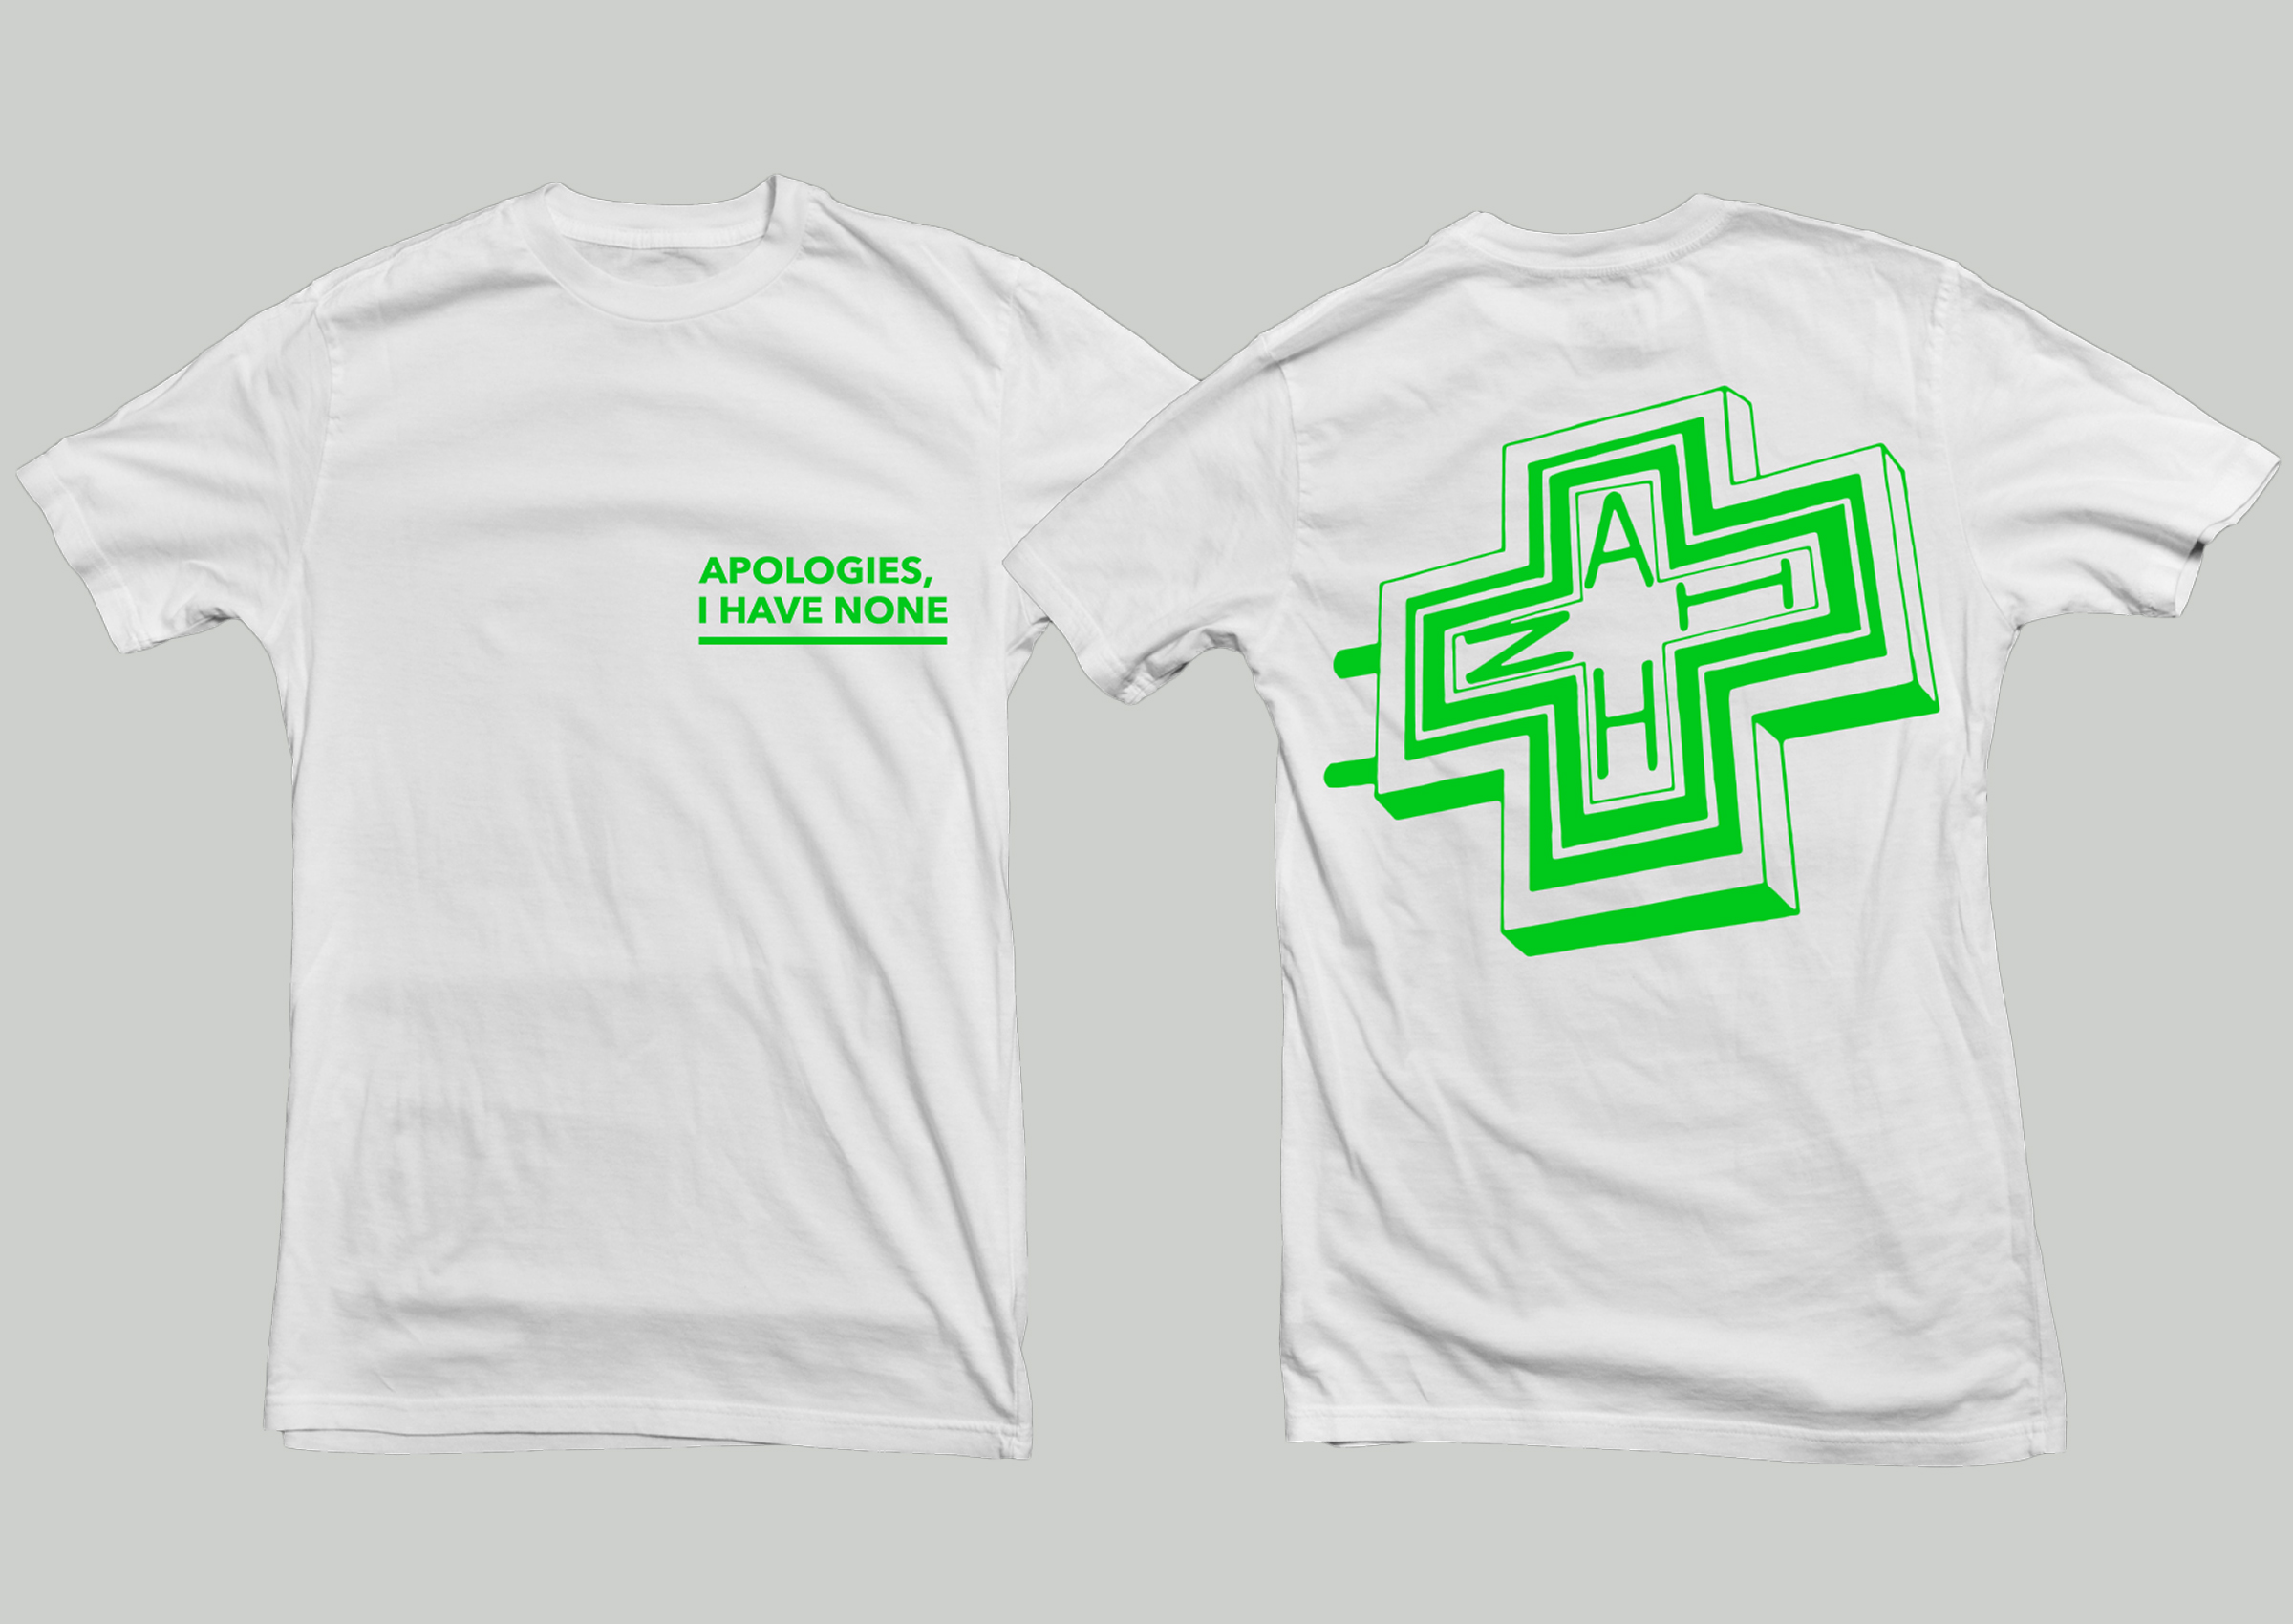 Apologies, I Have None - 'Pharmacie' shirt